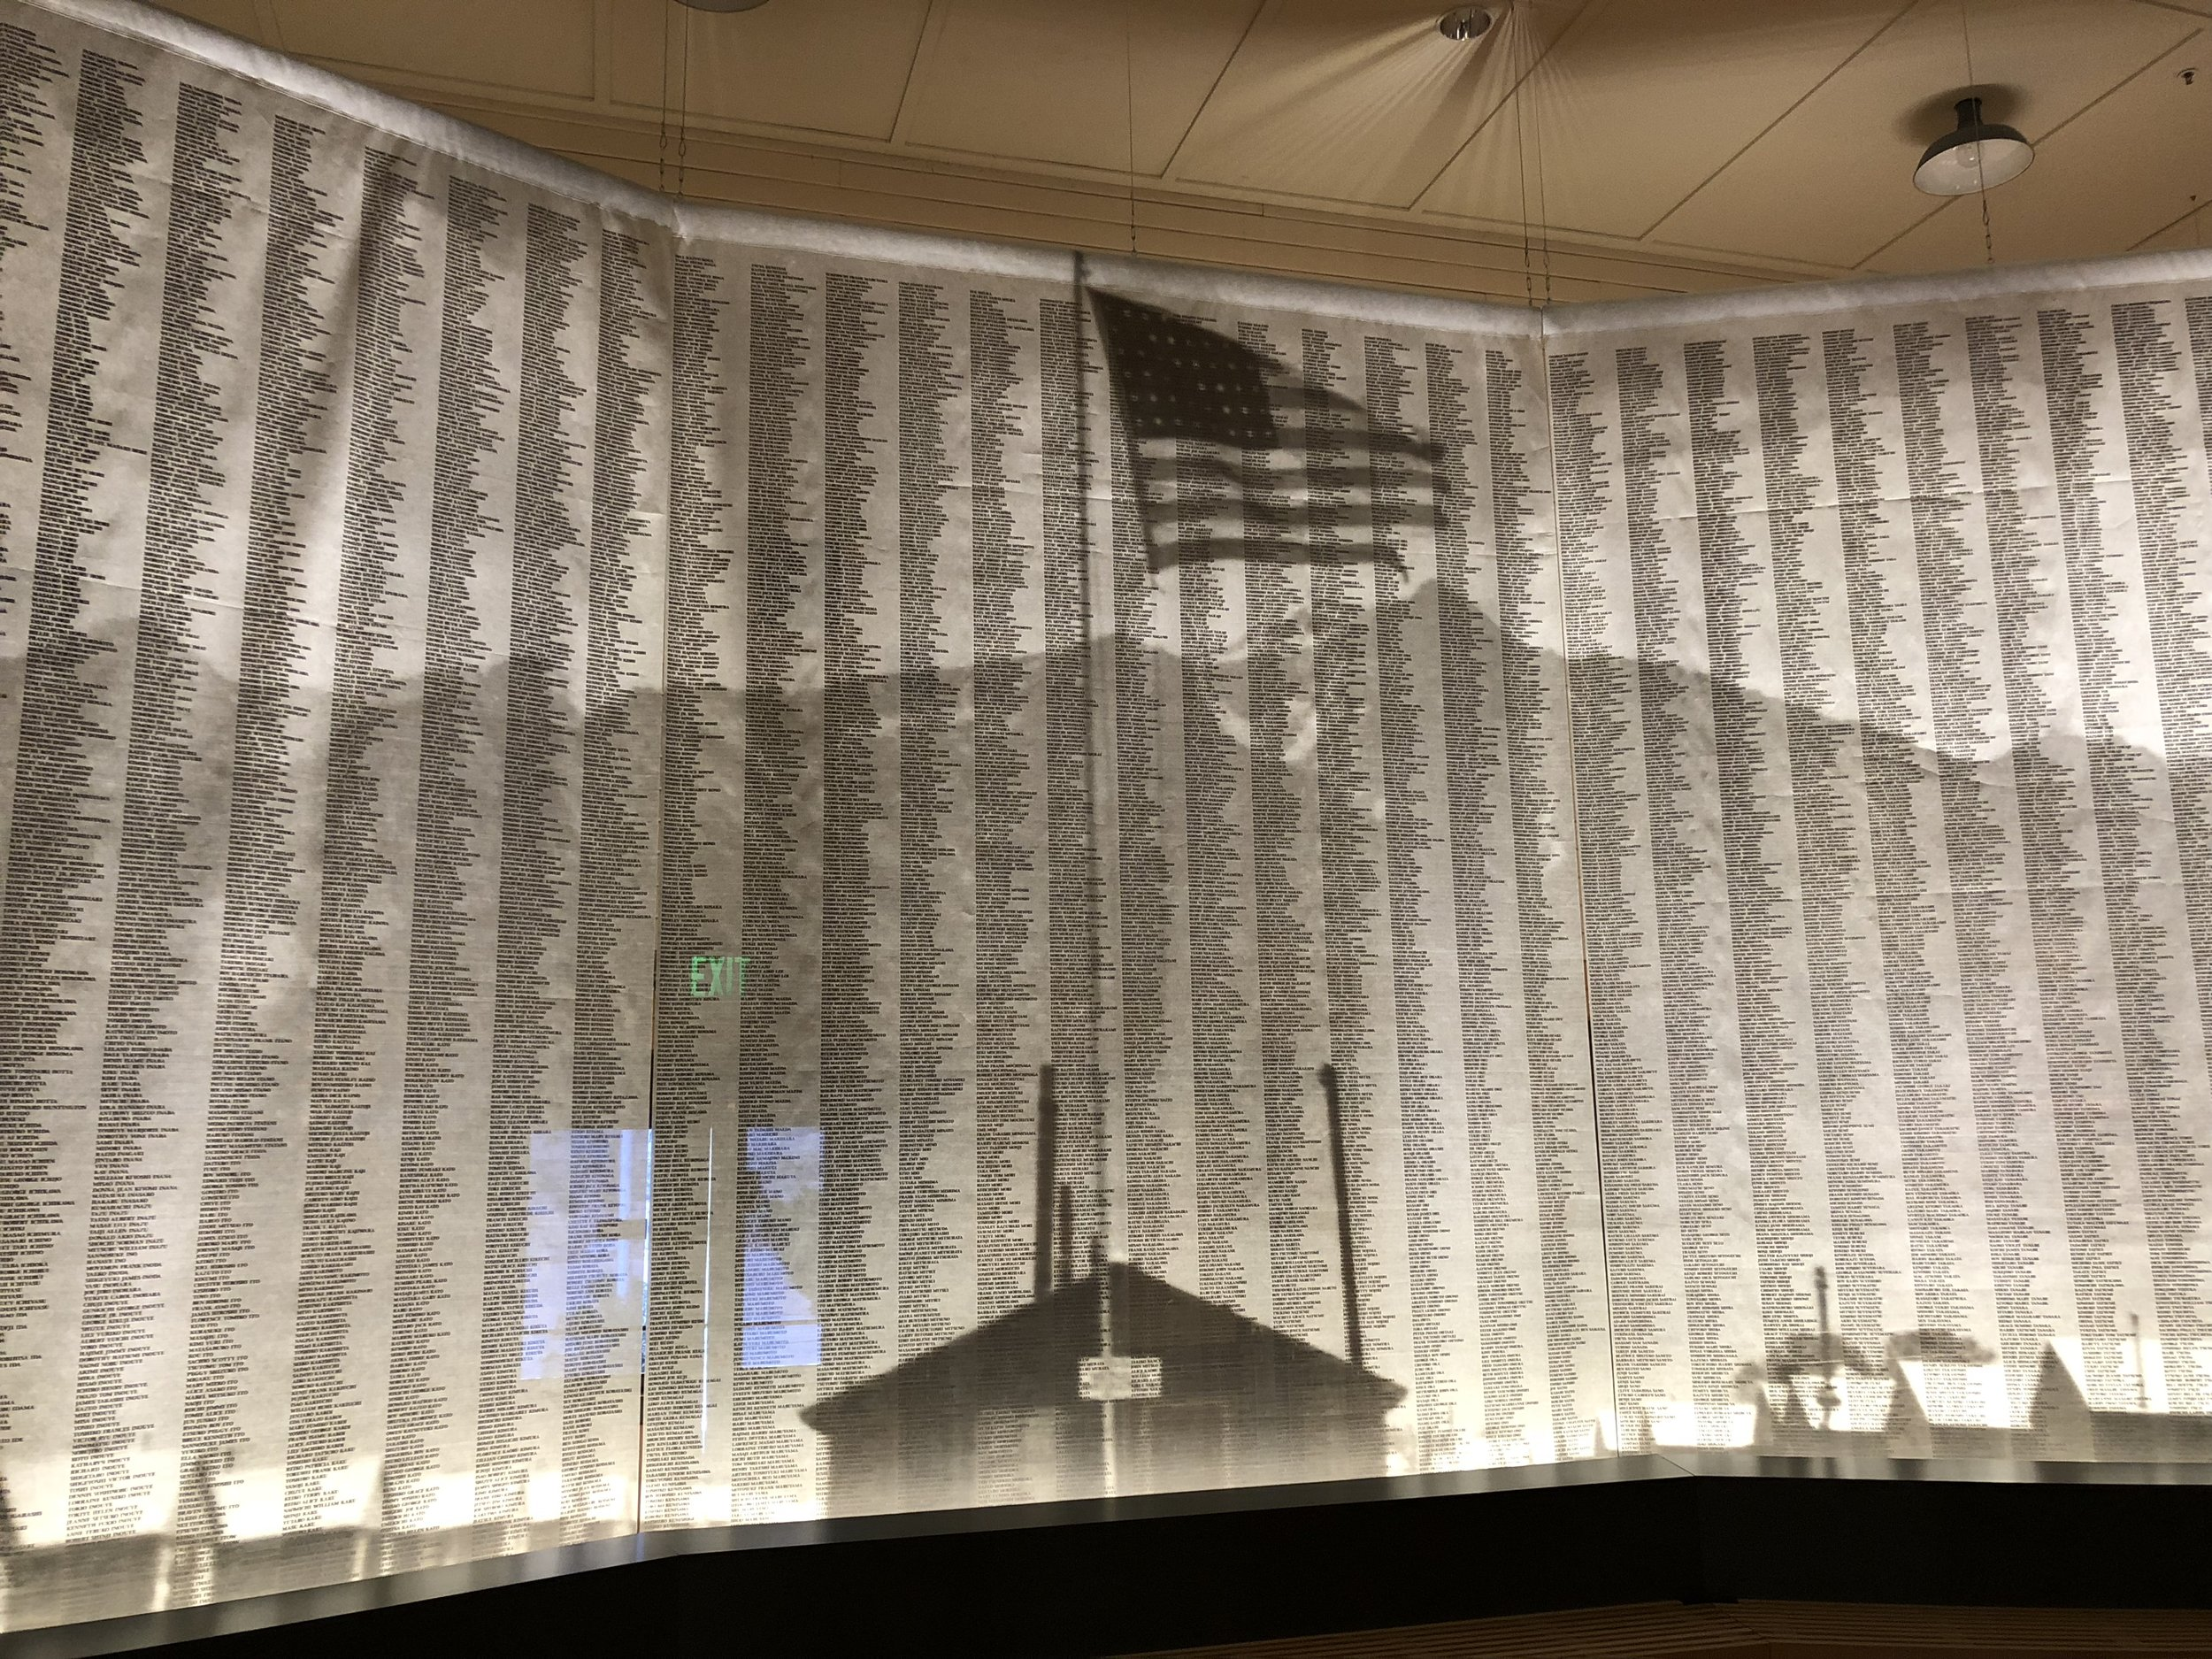 120,000 names of forcibly incarcerated Japanese-Americans